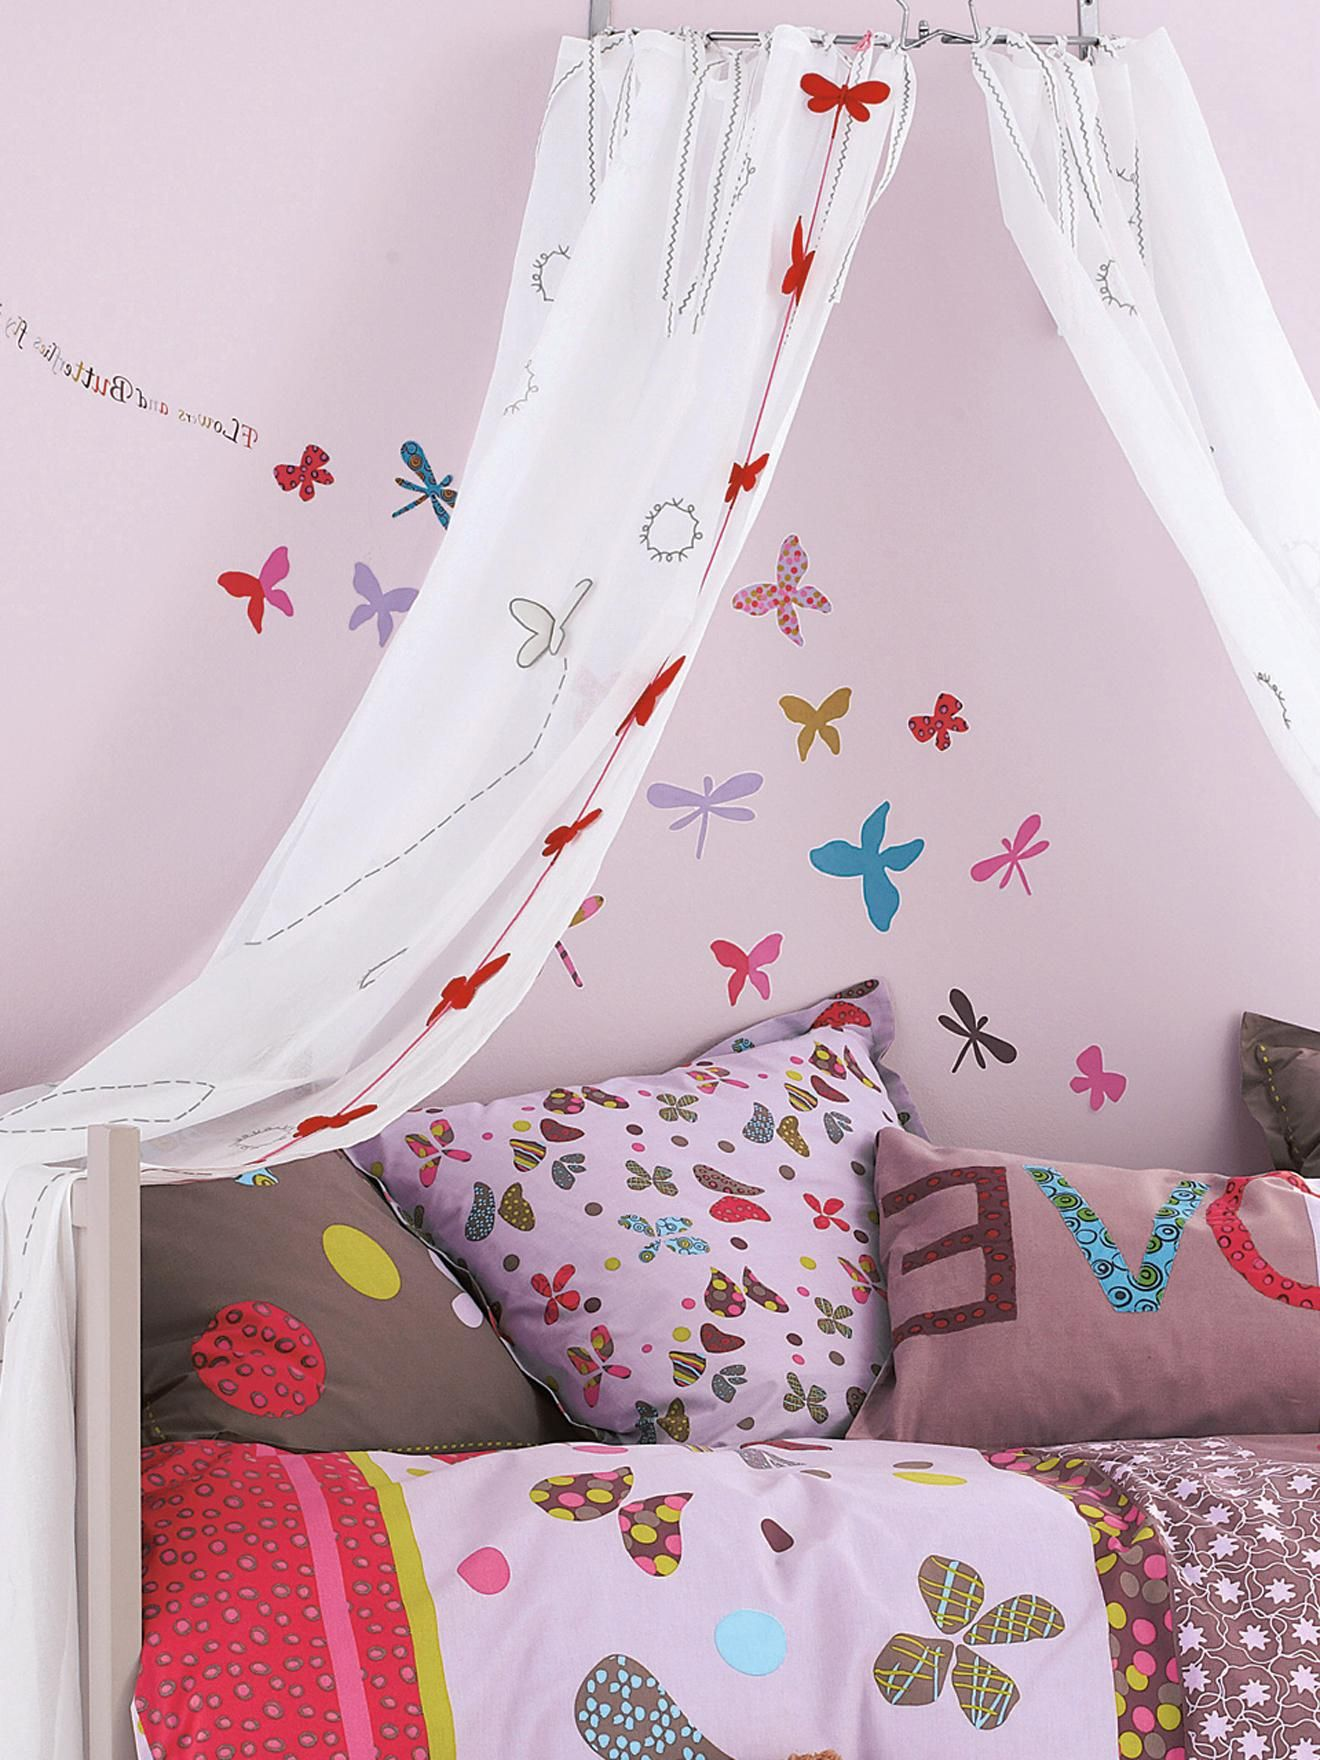 adorable wall decal decoration ideas set on violet painting wall